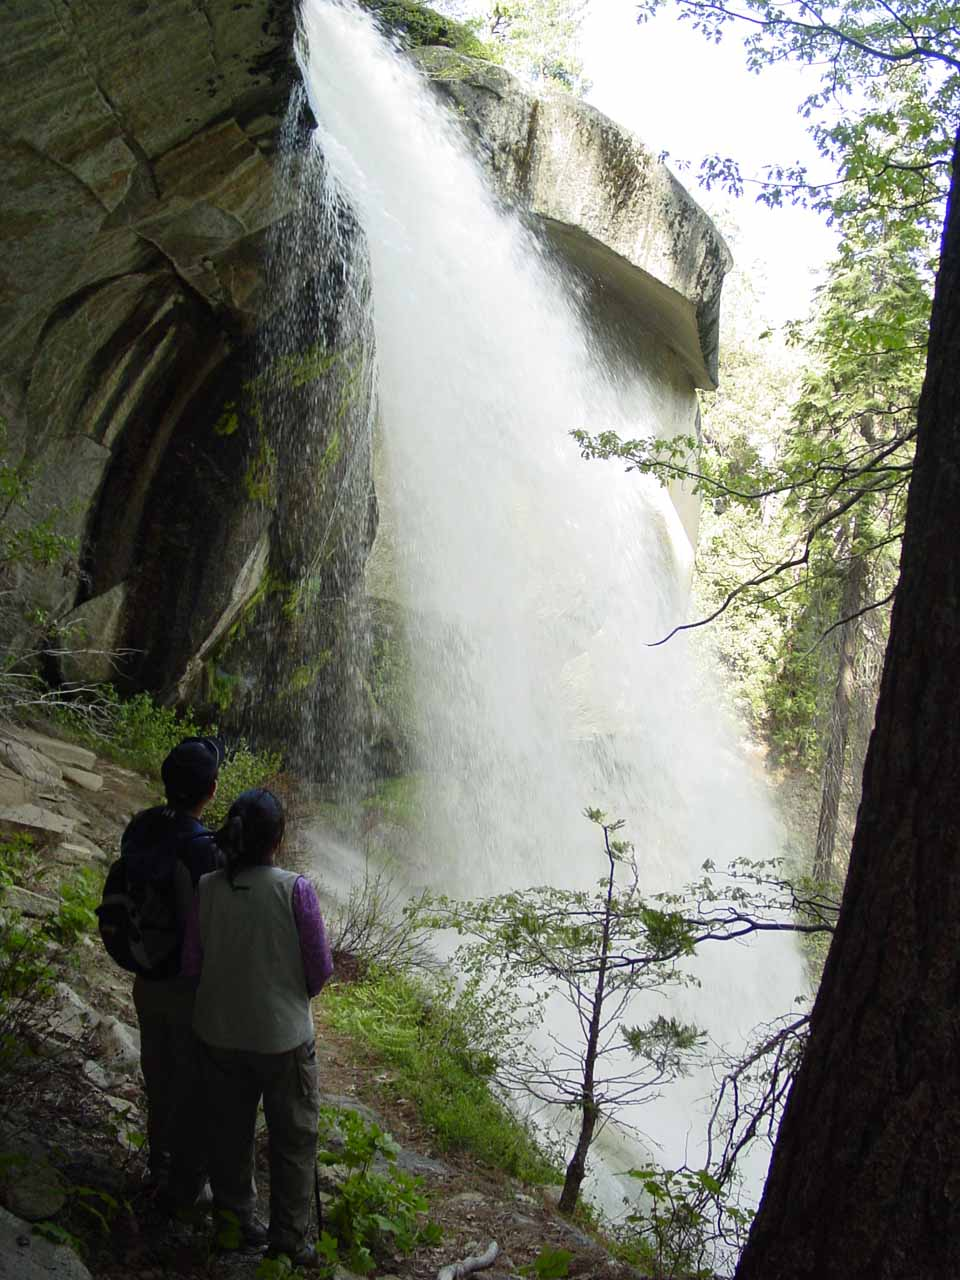 My parents checking out Nobe Young Falls